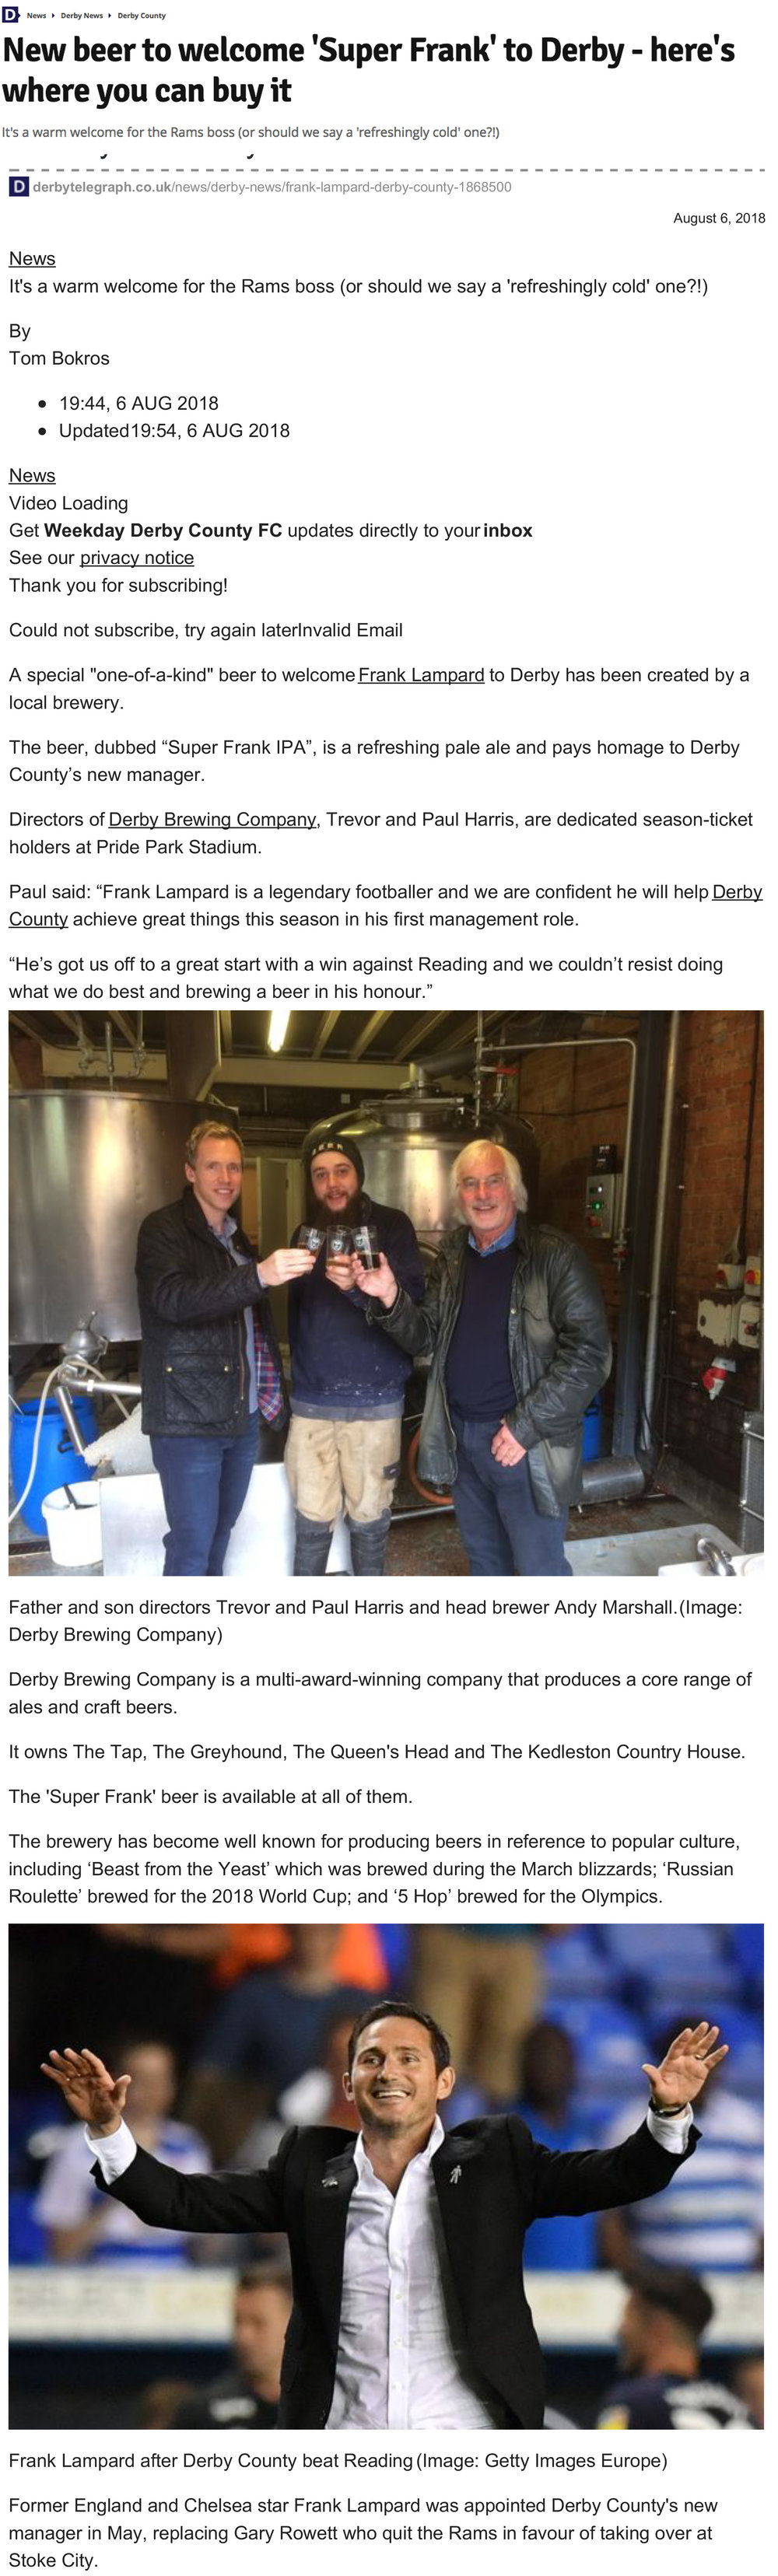 derbytelegraph.co.uk-New beer to welcome Super Frank to Derby - heres where you can buy it (1)-1.jpg